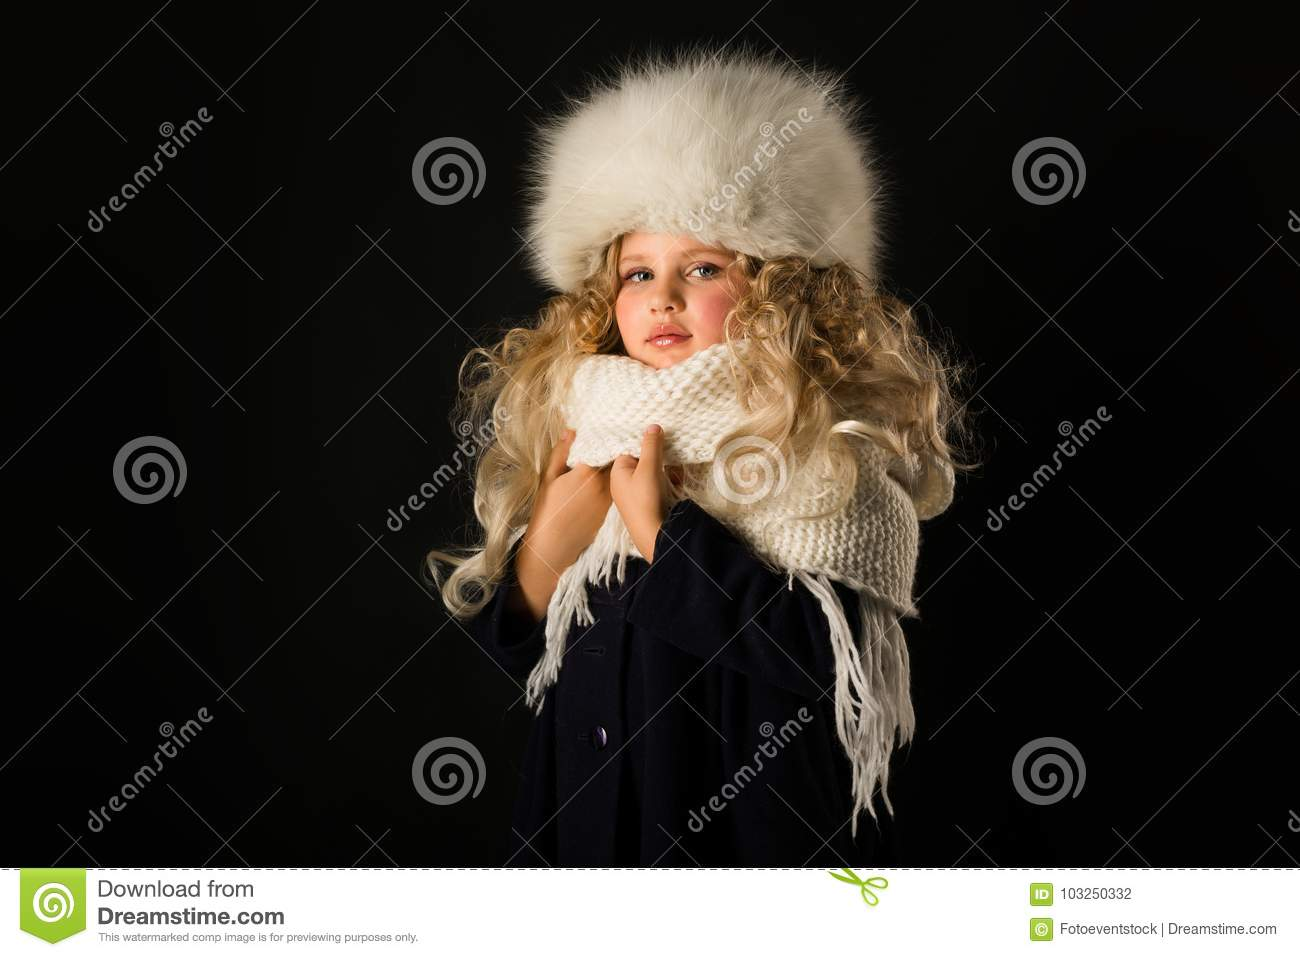 f8edbd15dba3d Isolated on black, beautiful caucasian blonde little girl in dark blue coat,  white scarf and white fur hat, look at camera. More similar stock images